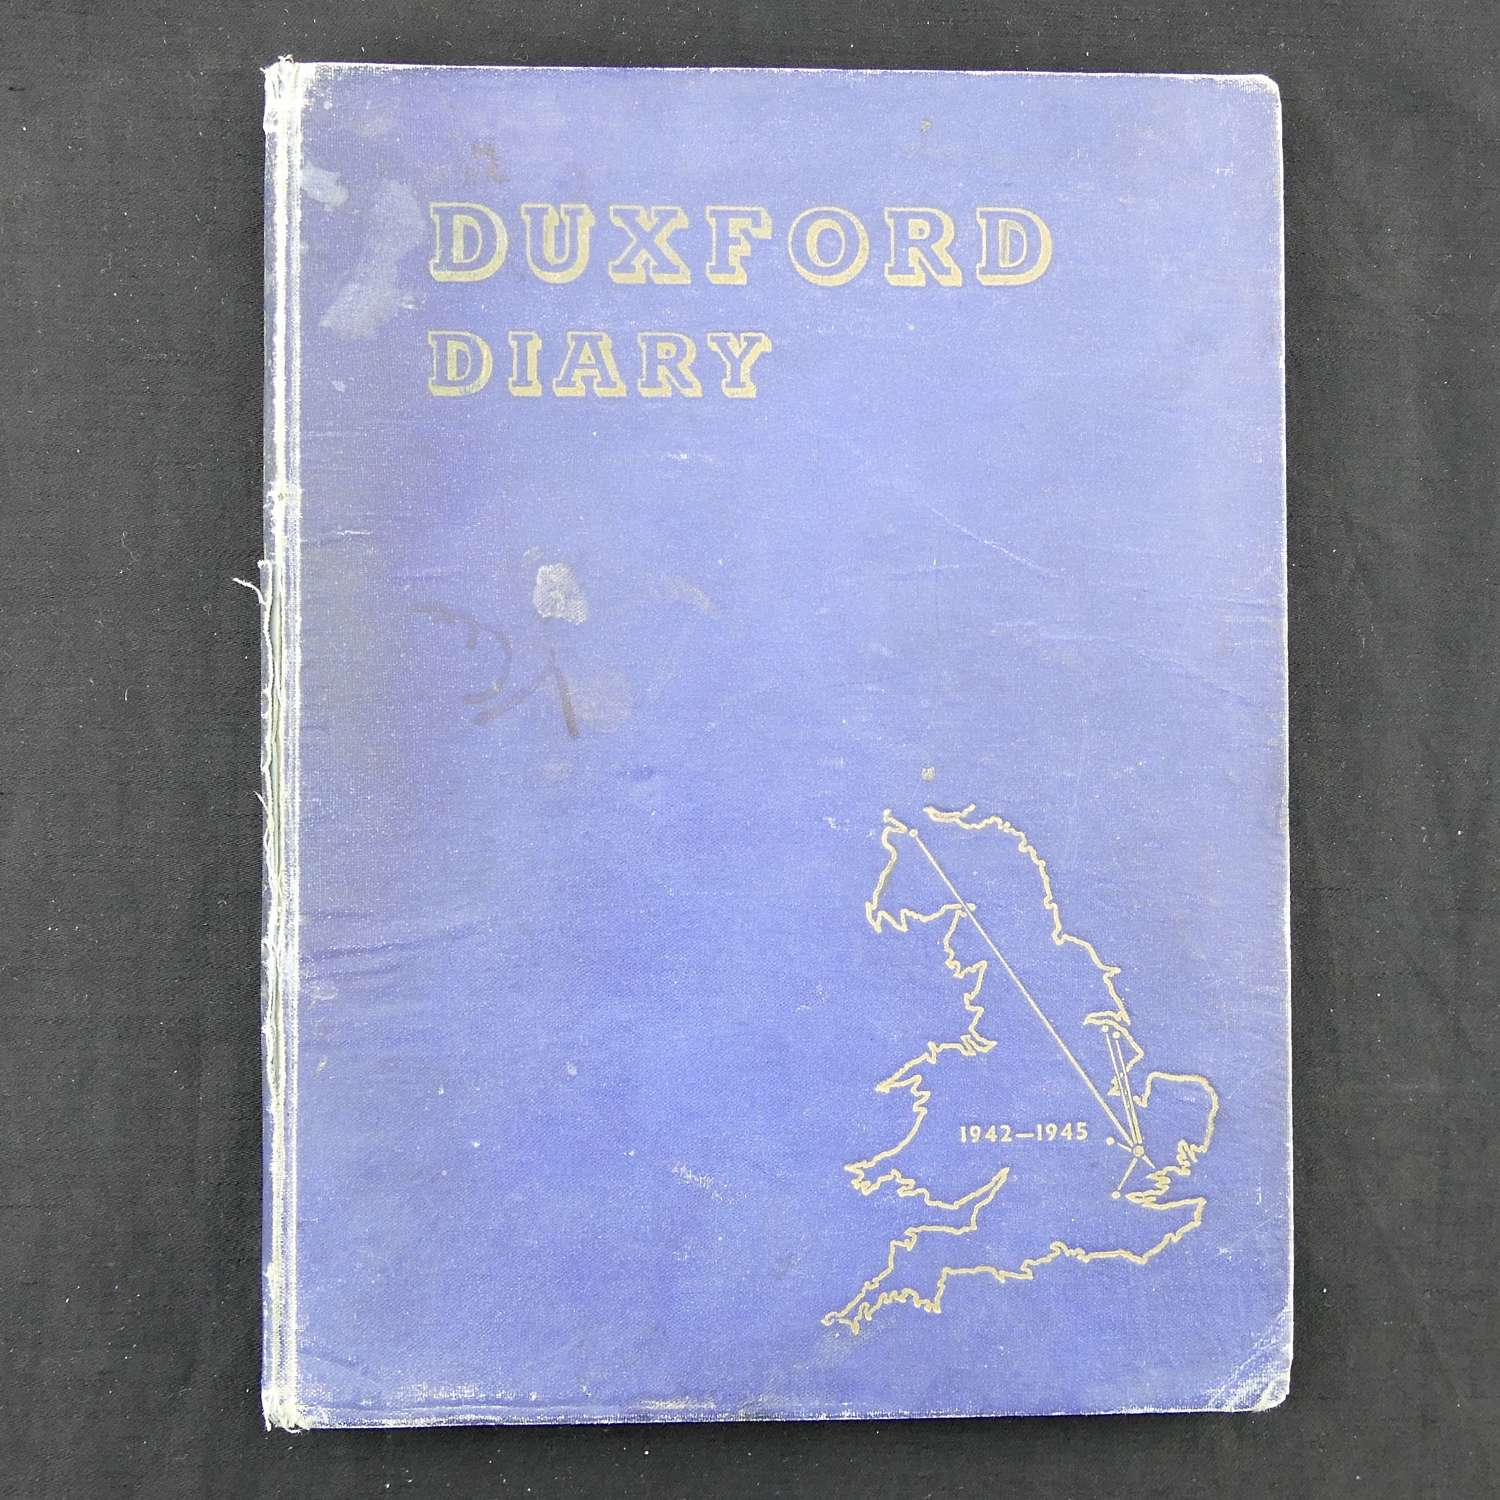 Duxford Diary 1942 - 1945, 1st edition